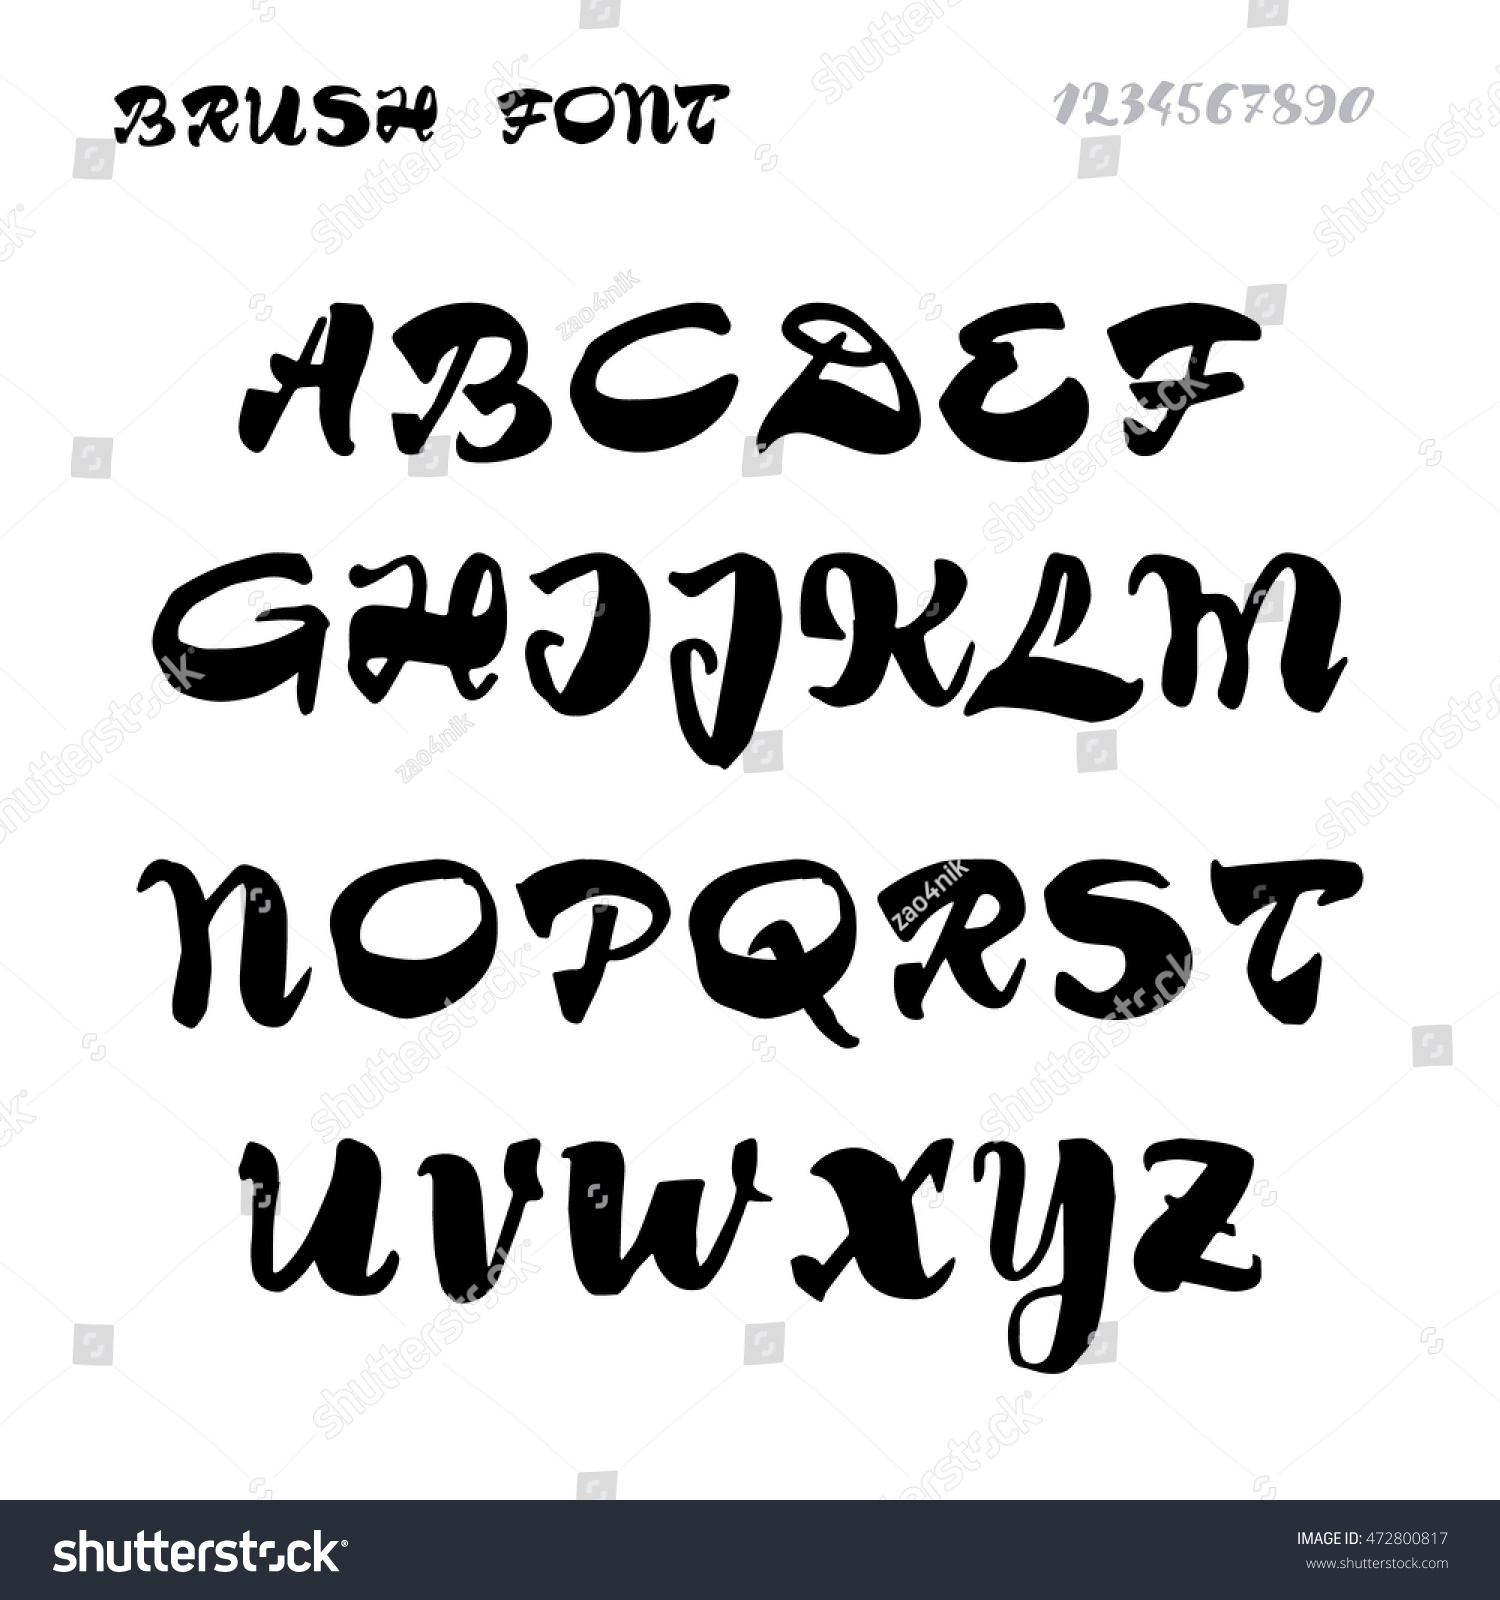 handwriting font for logo Graphic artists who love beautiful script-style fonts like those in old letters and in the coca-cola logo will love these spencerian style fonts.